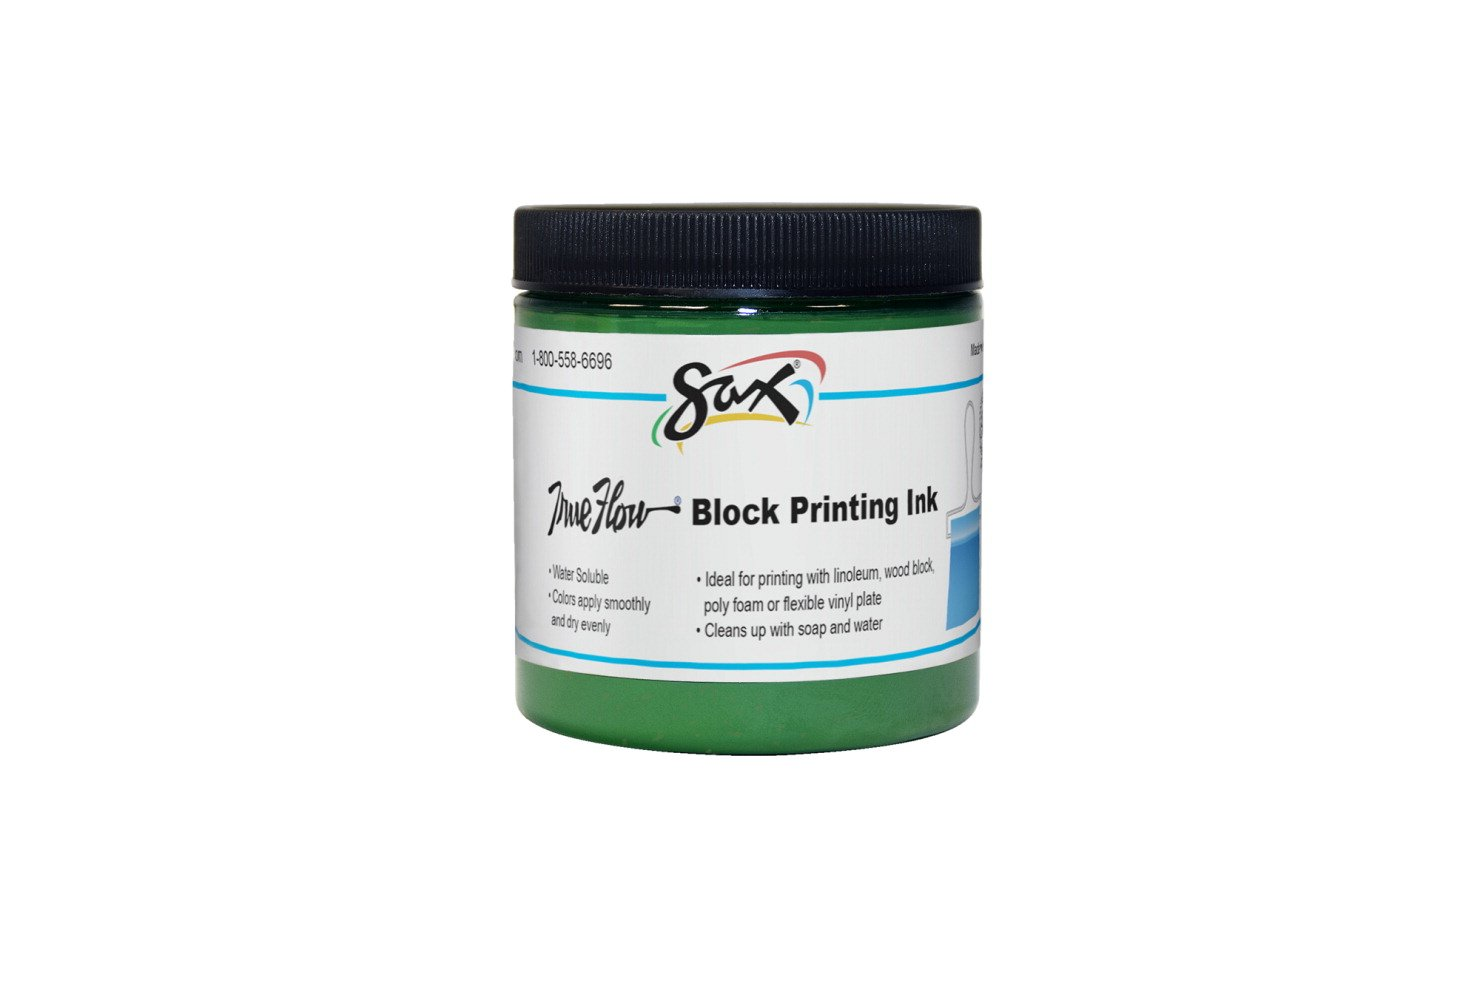 Sax True Flow Water Soluble Block Printing Ink - 8 Ounce Jar - Green by Sax (Image #1)